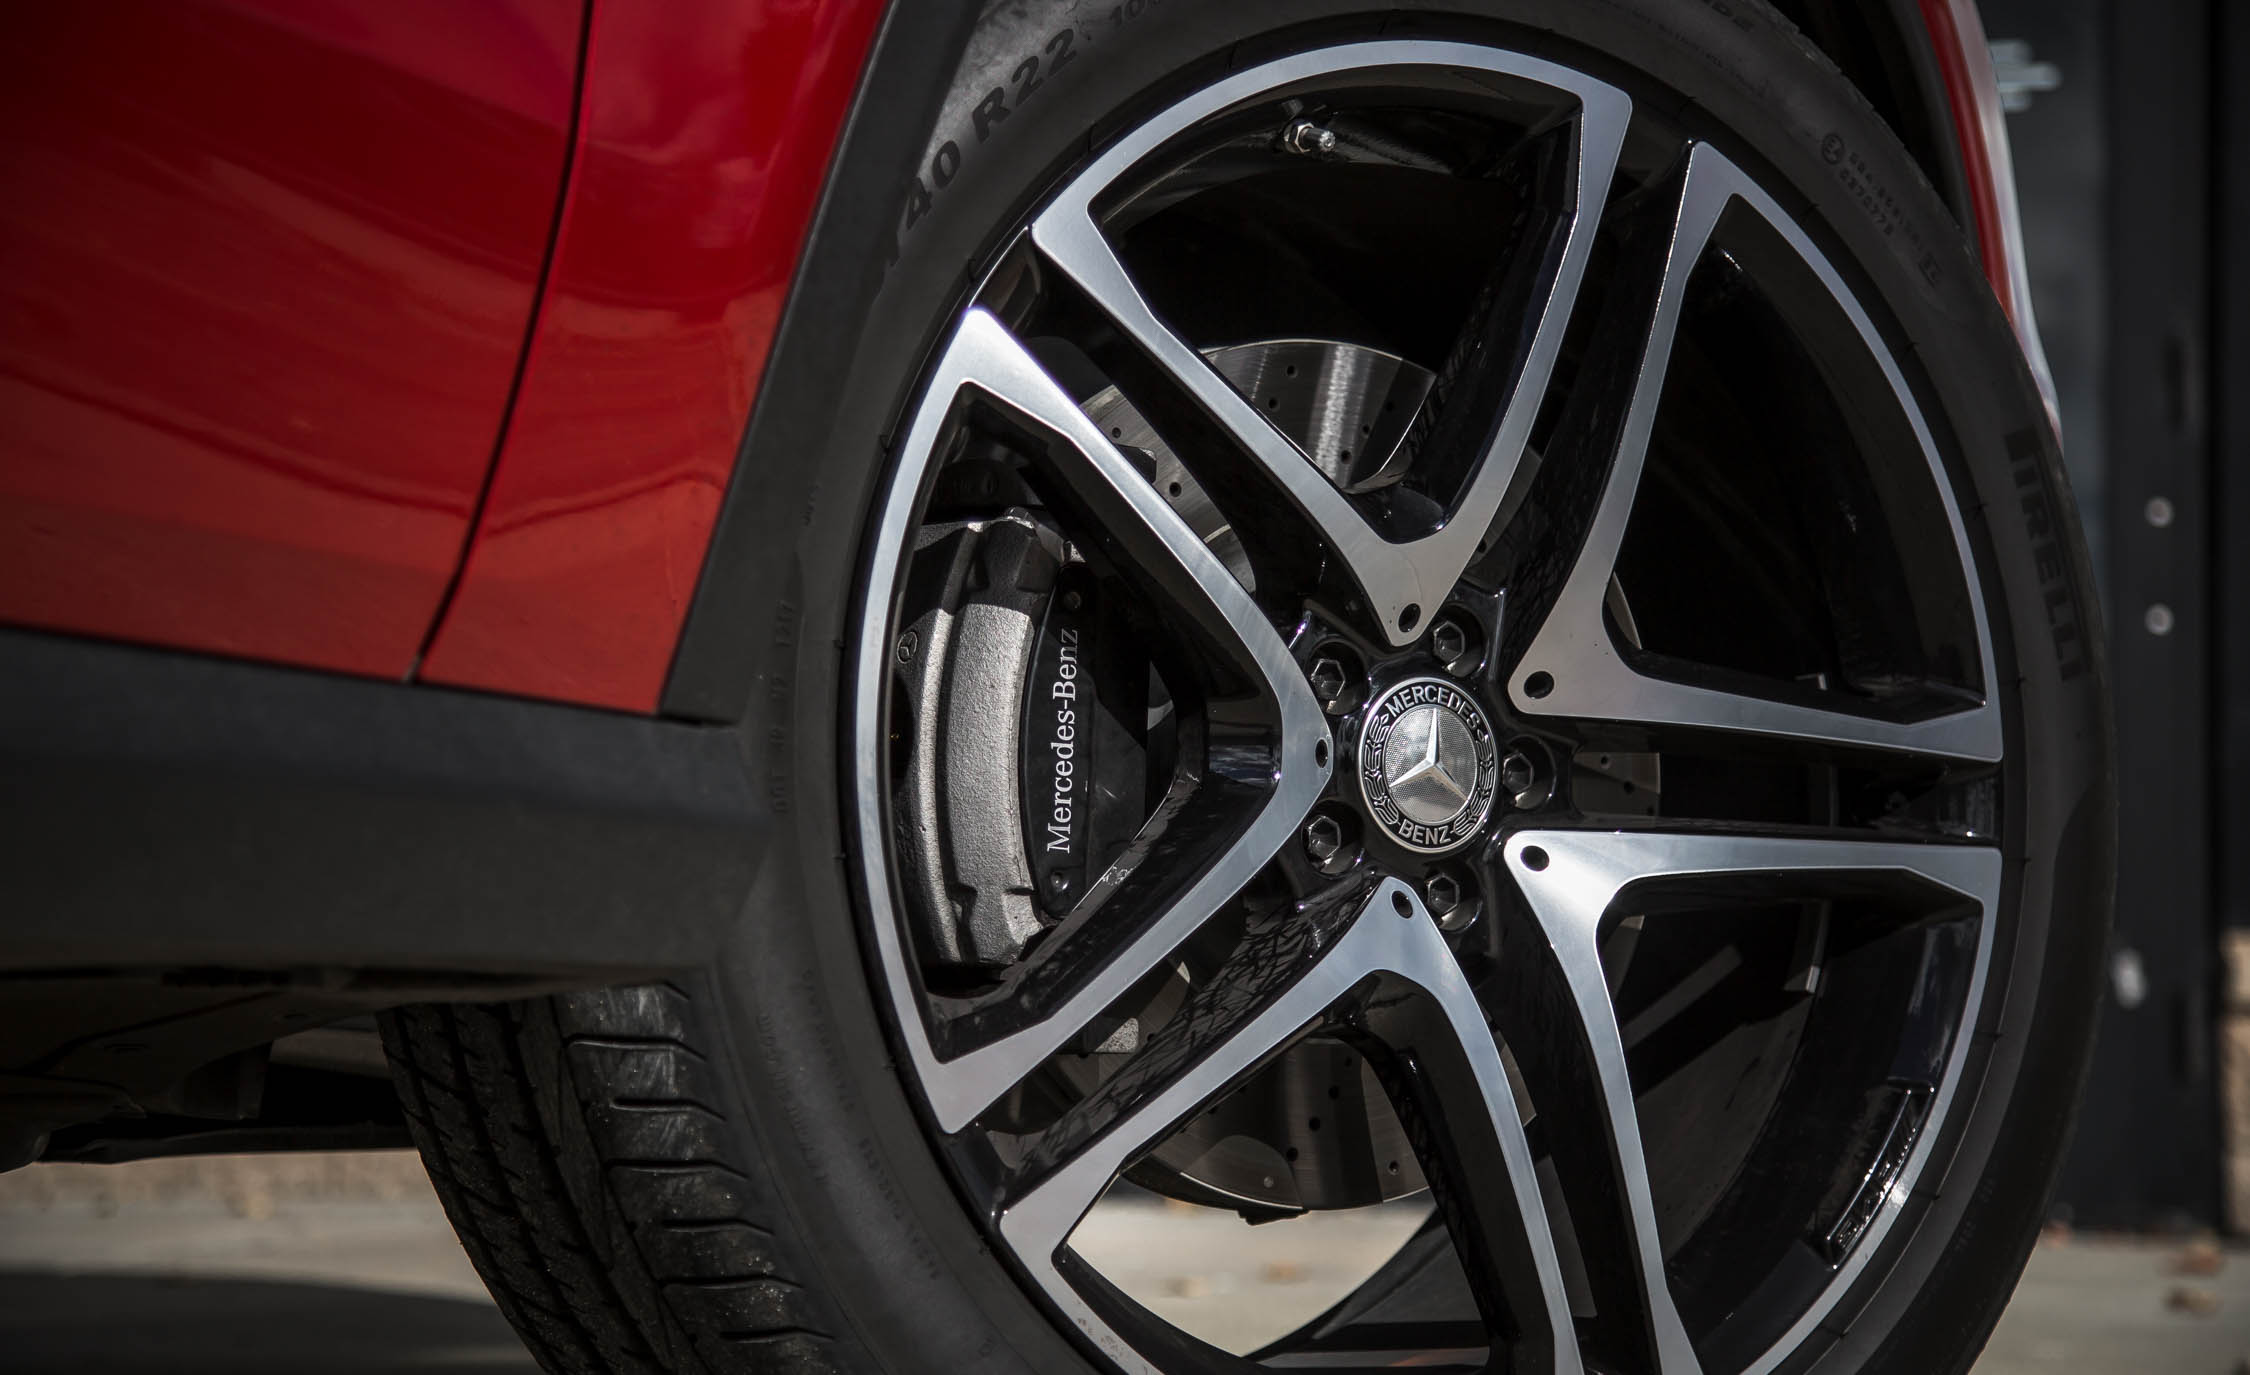 2016 Mercedes-Benz GLE450 AMG Coupe Exterior Wheel Trim